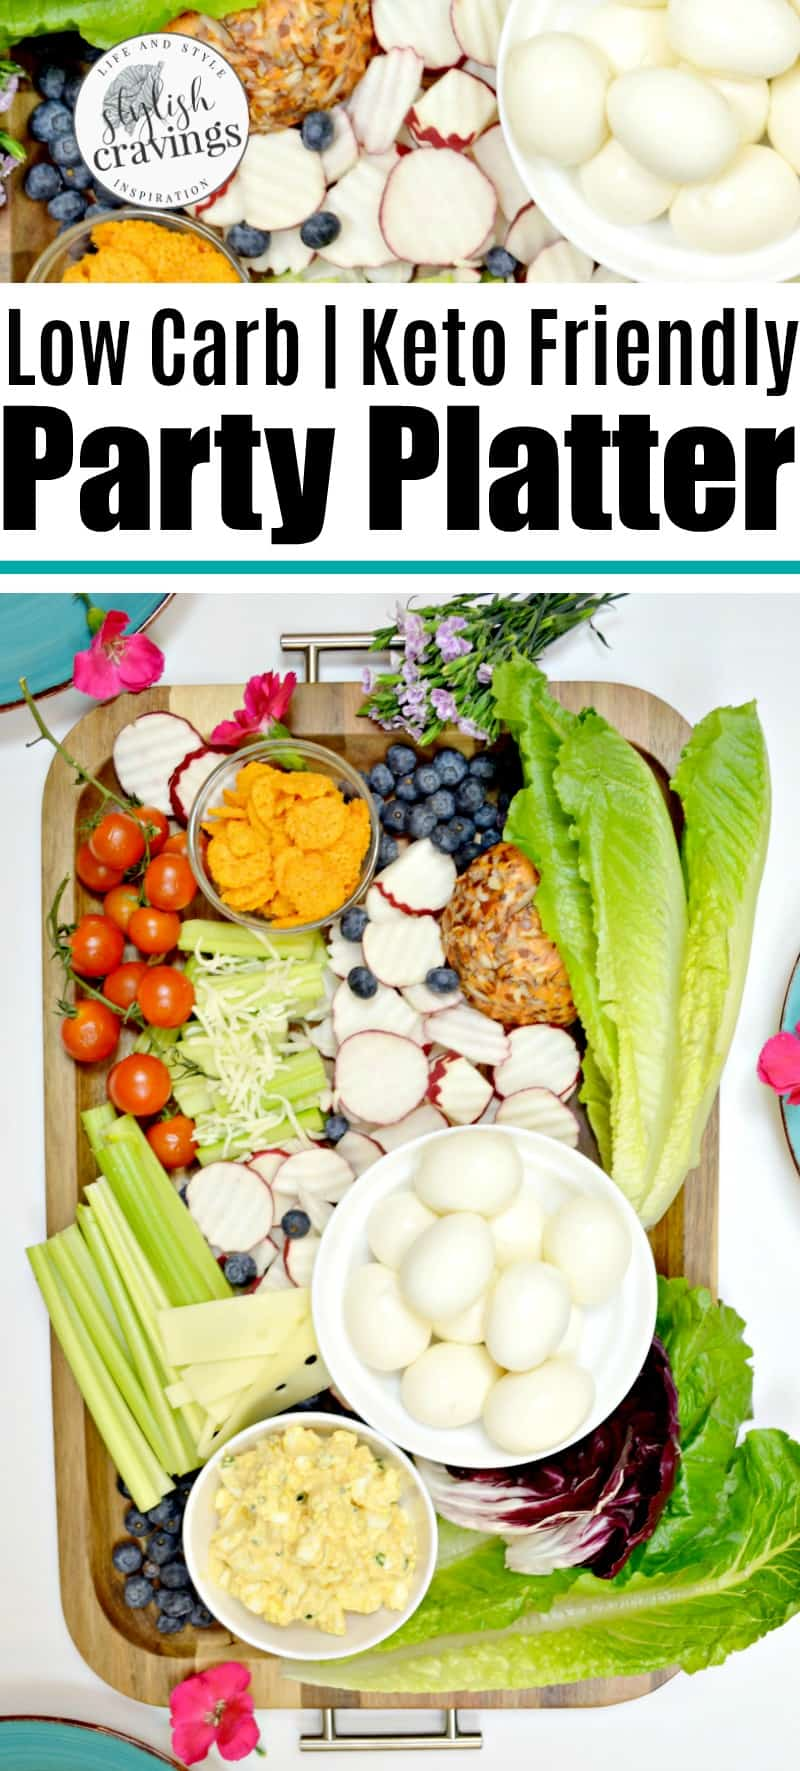 low carb party platter  stylish cravings party platters